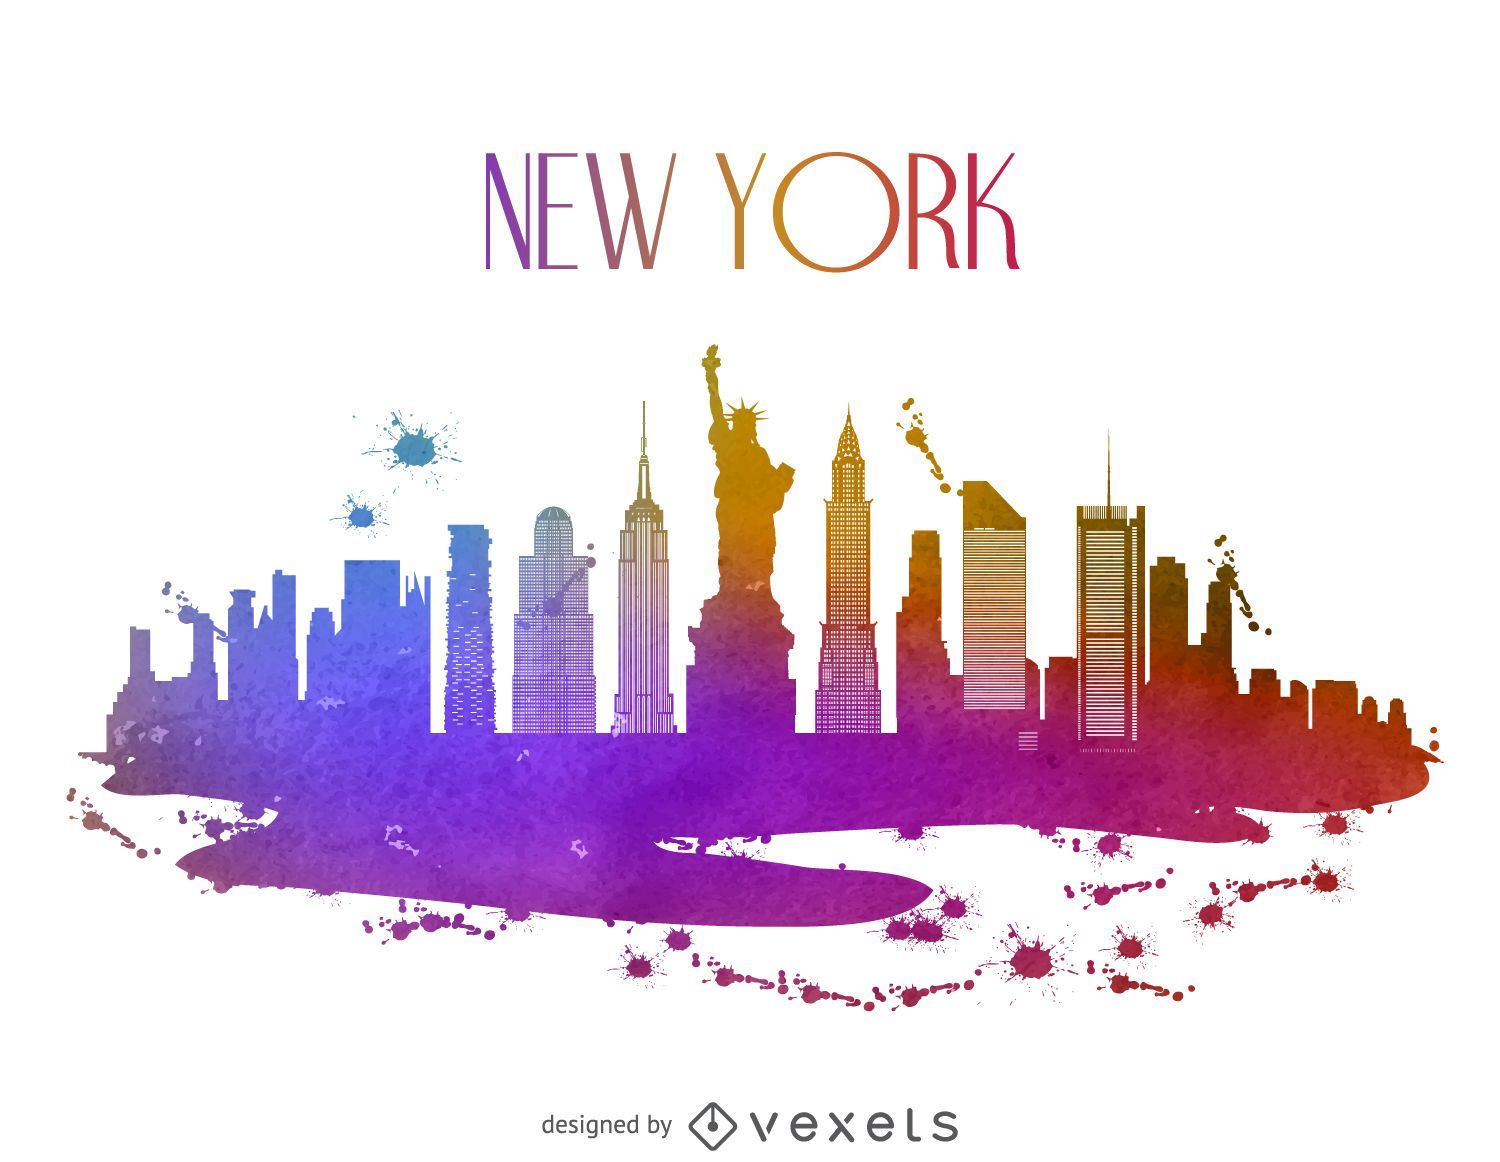 New York watercolor skyline - Vector download